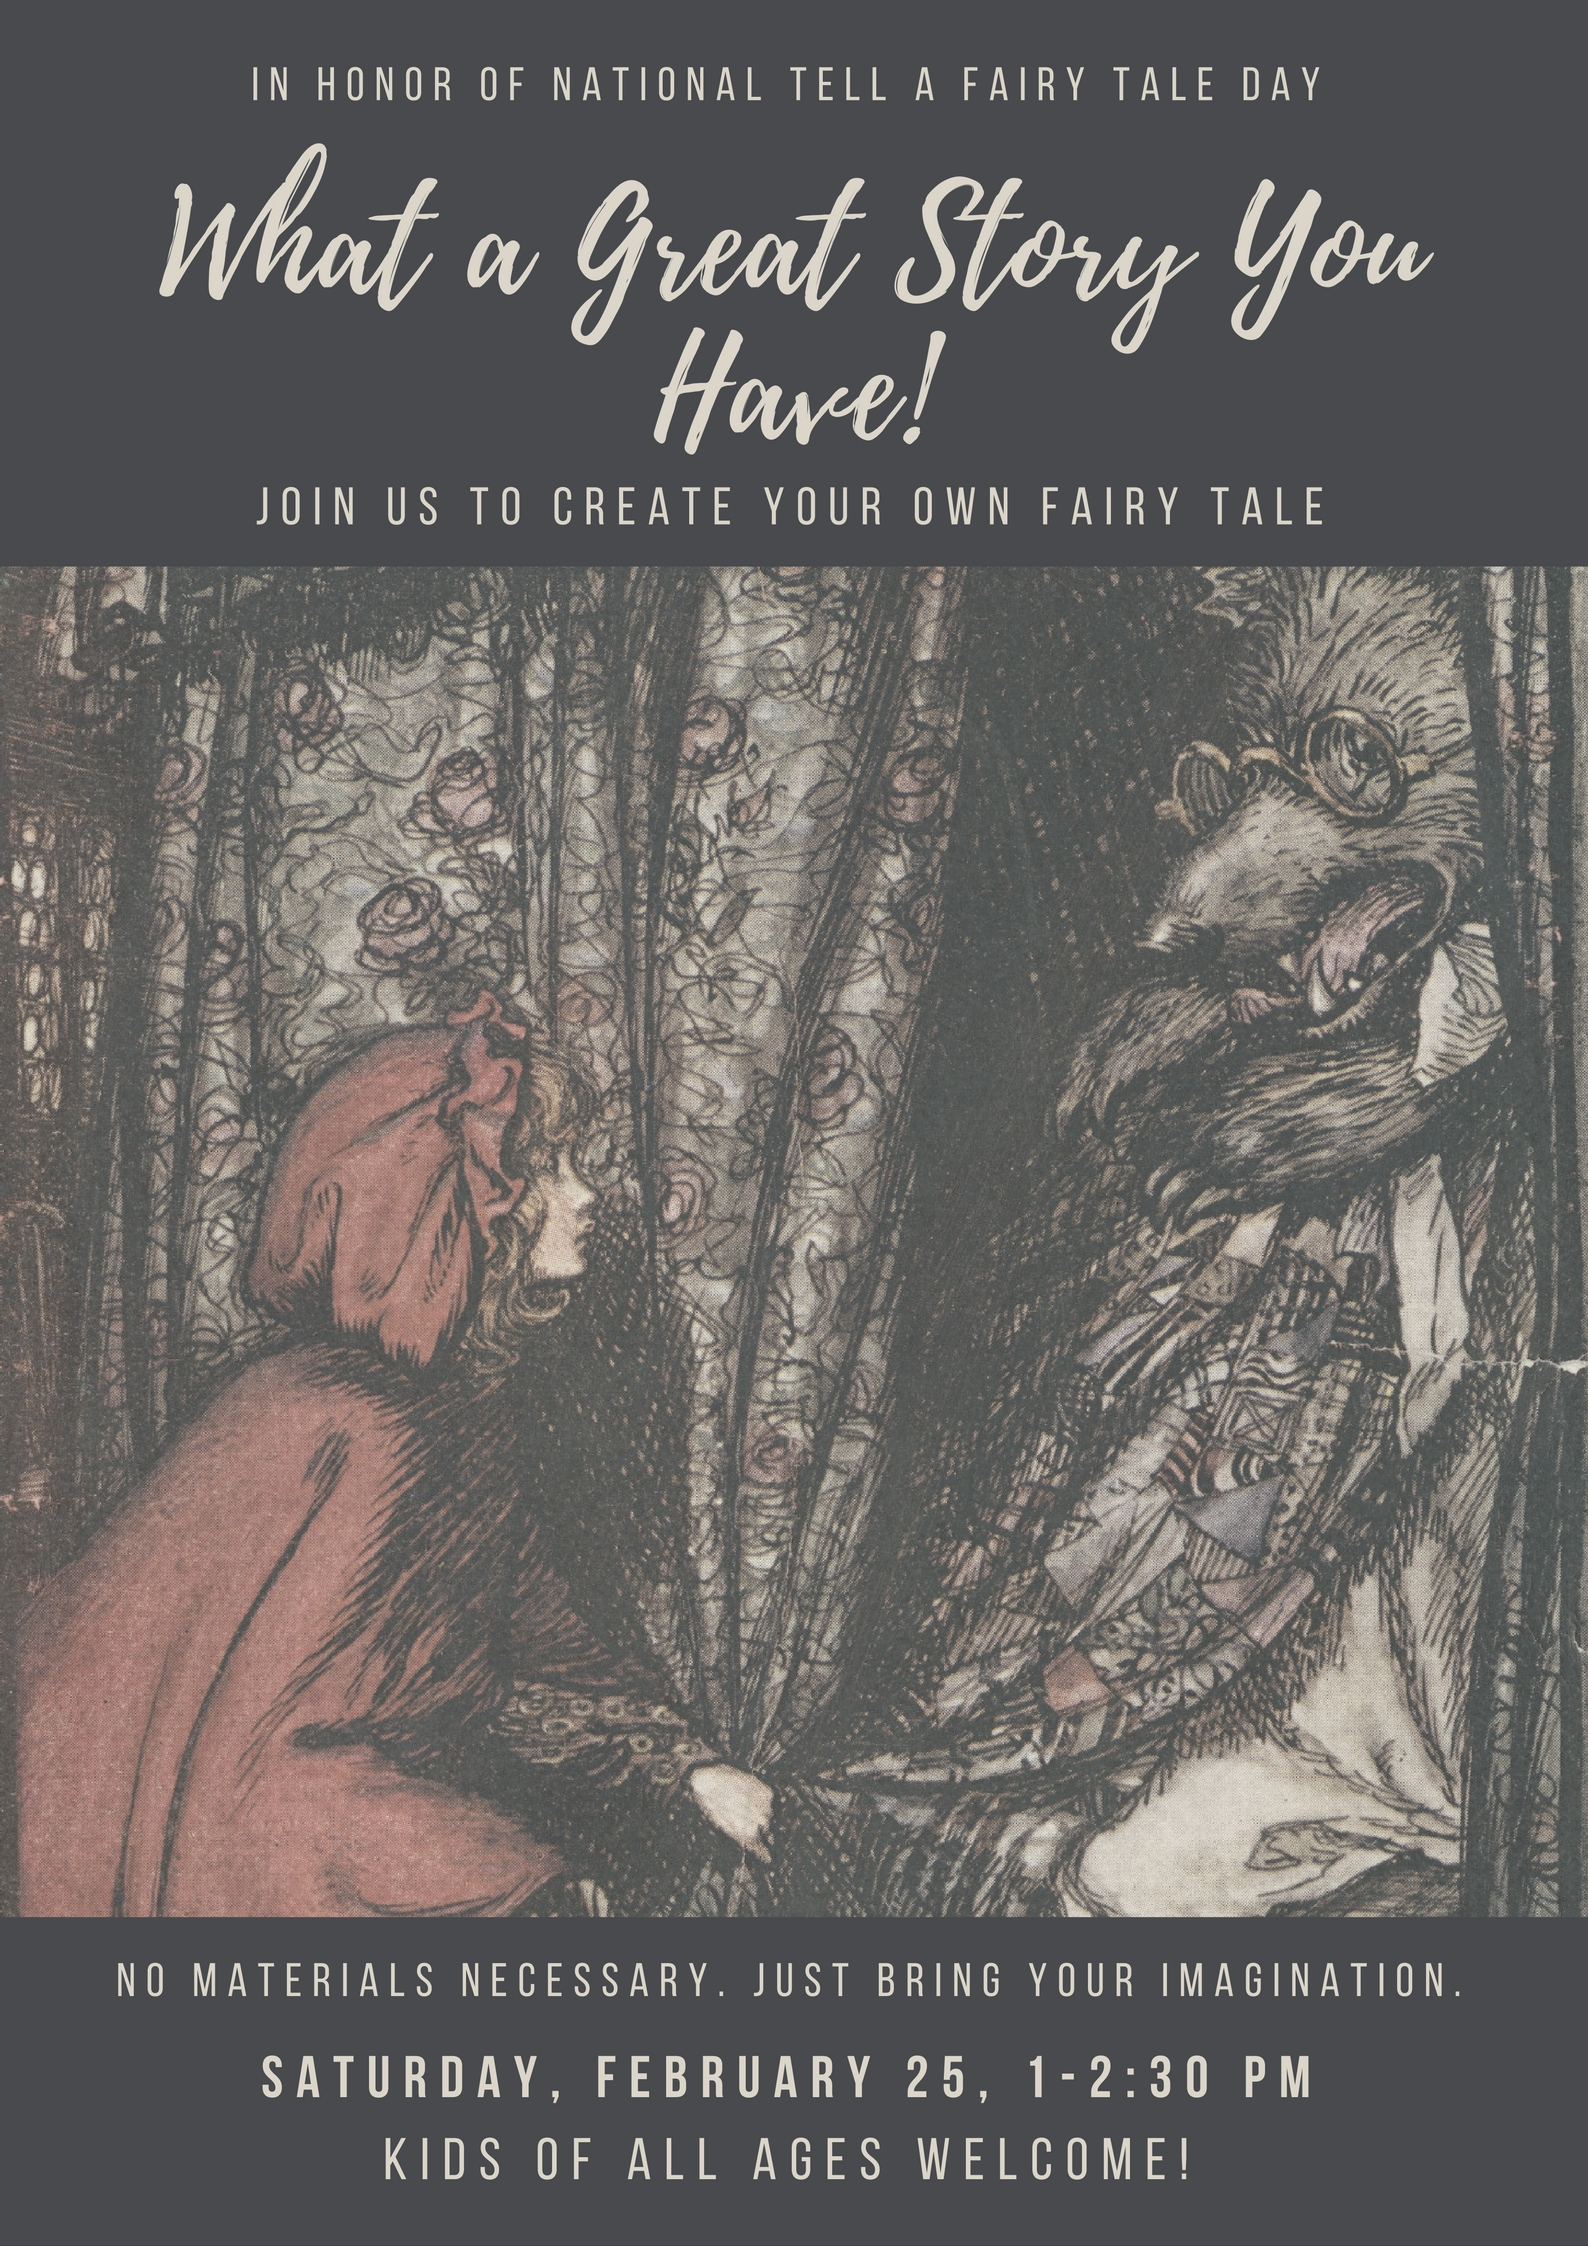 create your own fairy tale th the little falls 25th at 1pm to participate in this program for children of all ages children will be creating their own